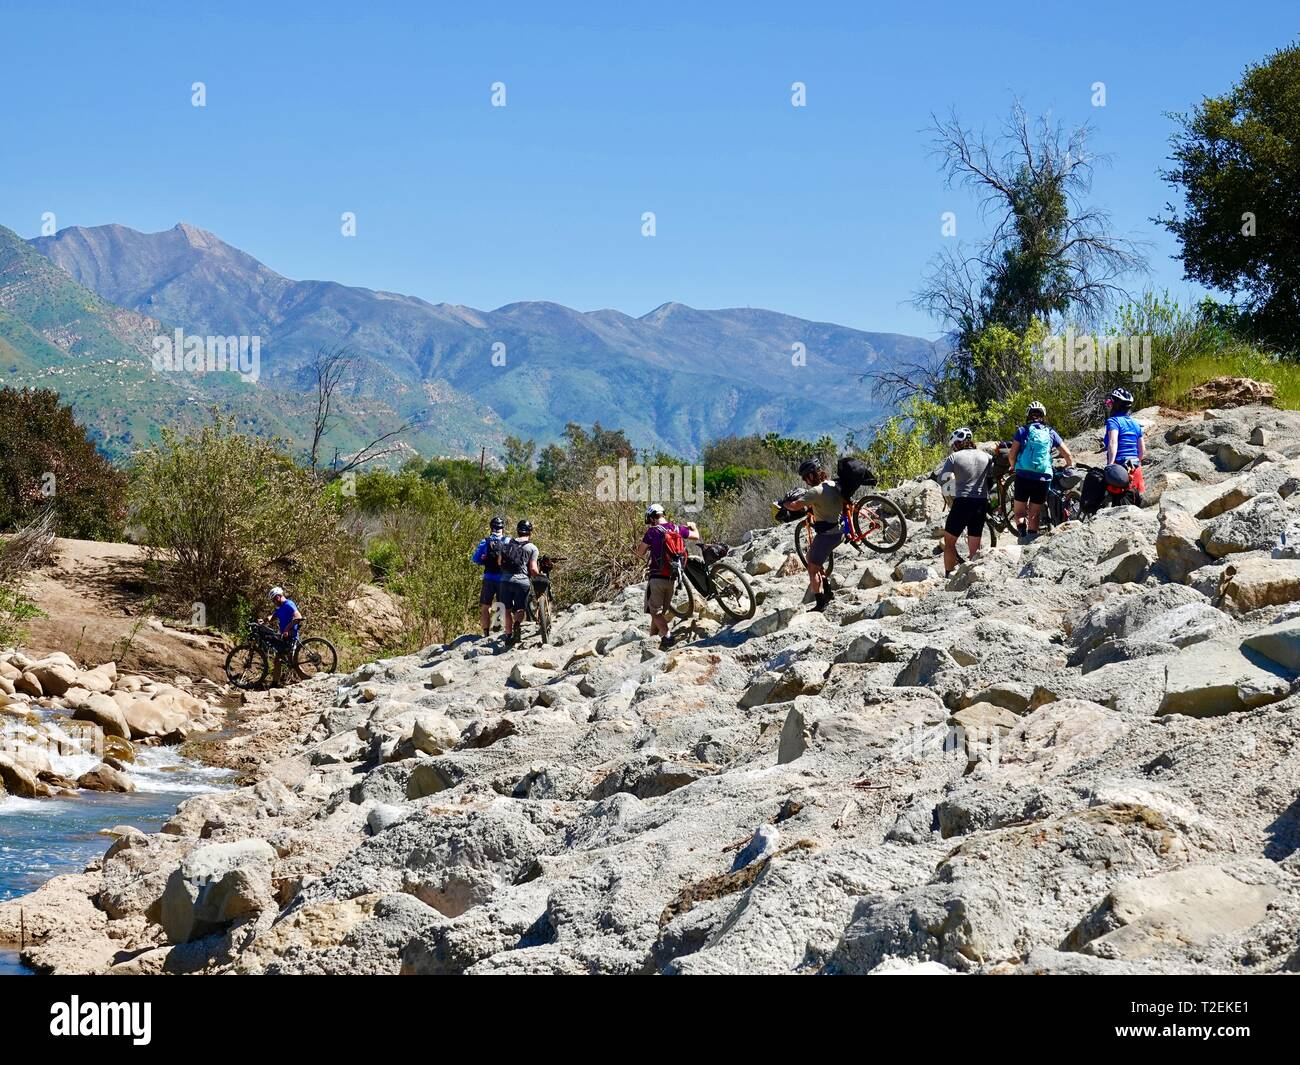 group-of-mountain-bikers-carrying-their-